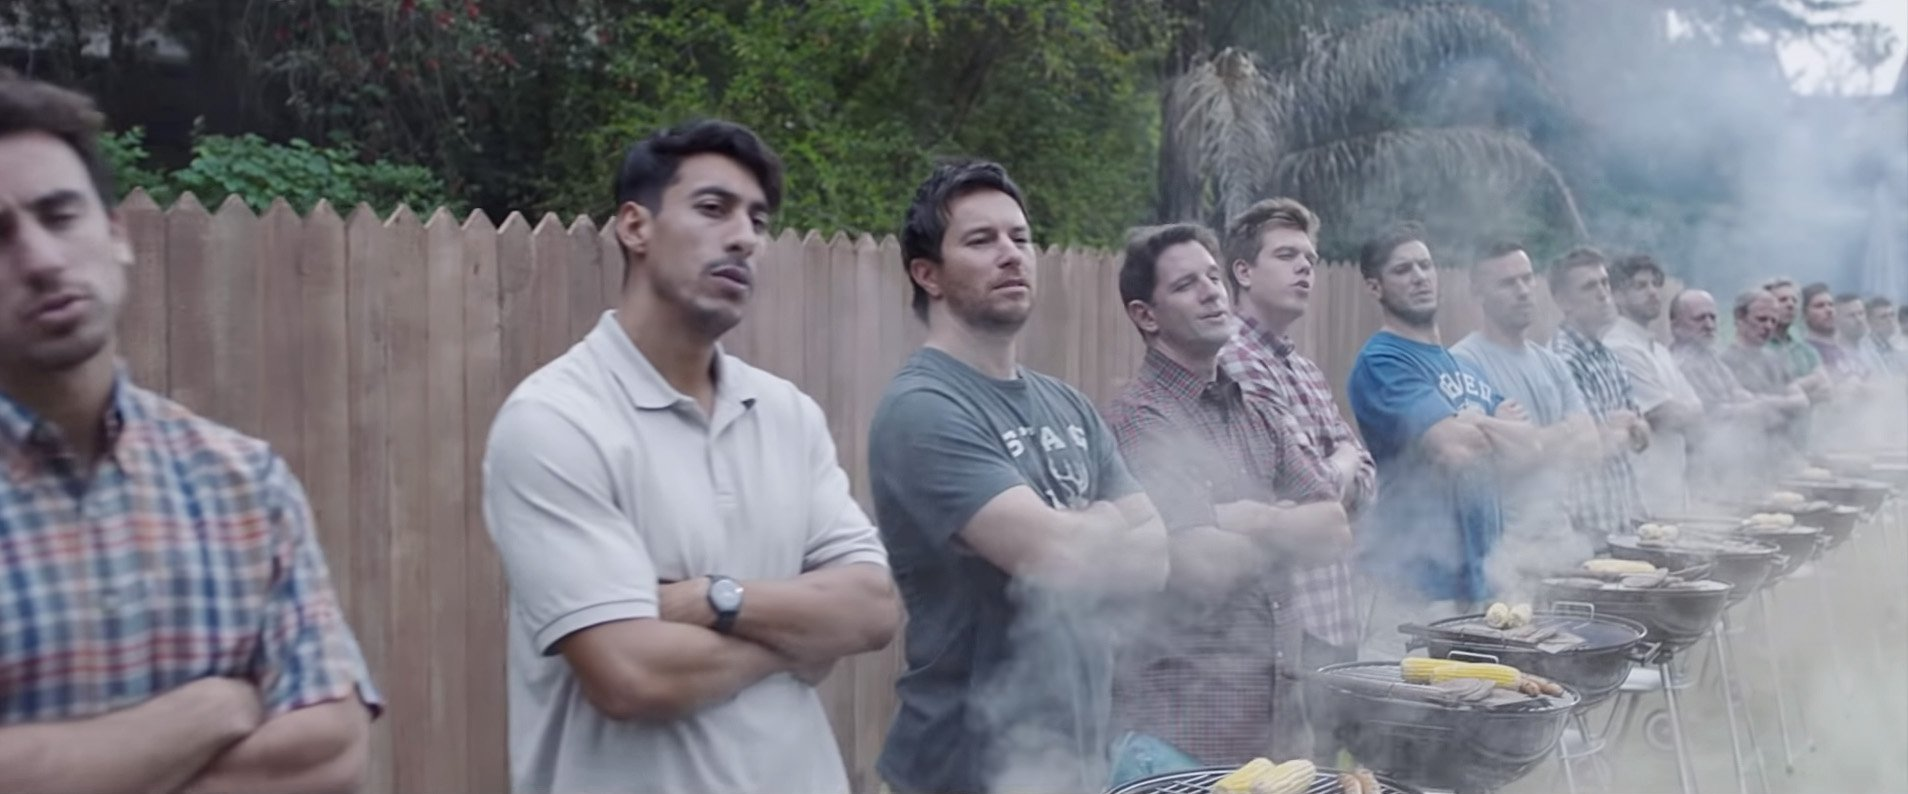 Anger at Gillette's #MeToo-inspired ad on 'toxic masculinity'